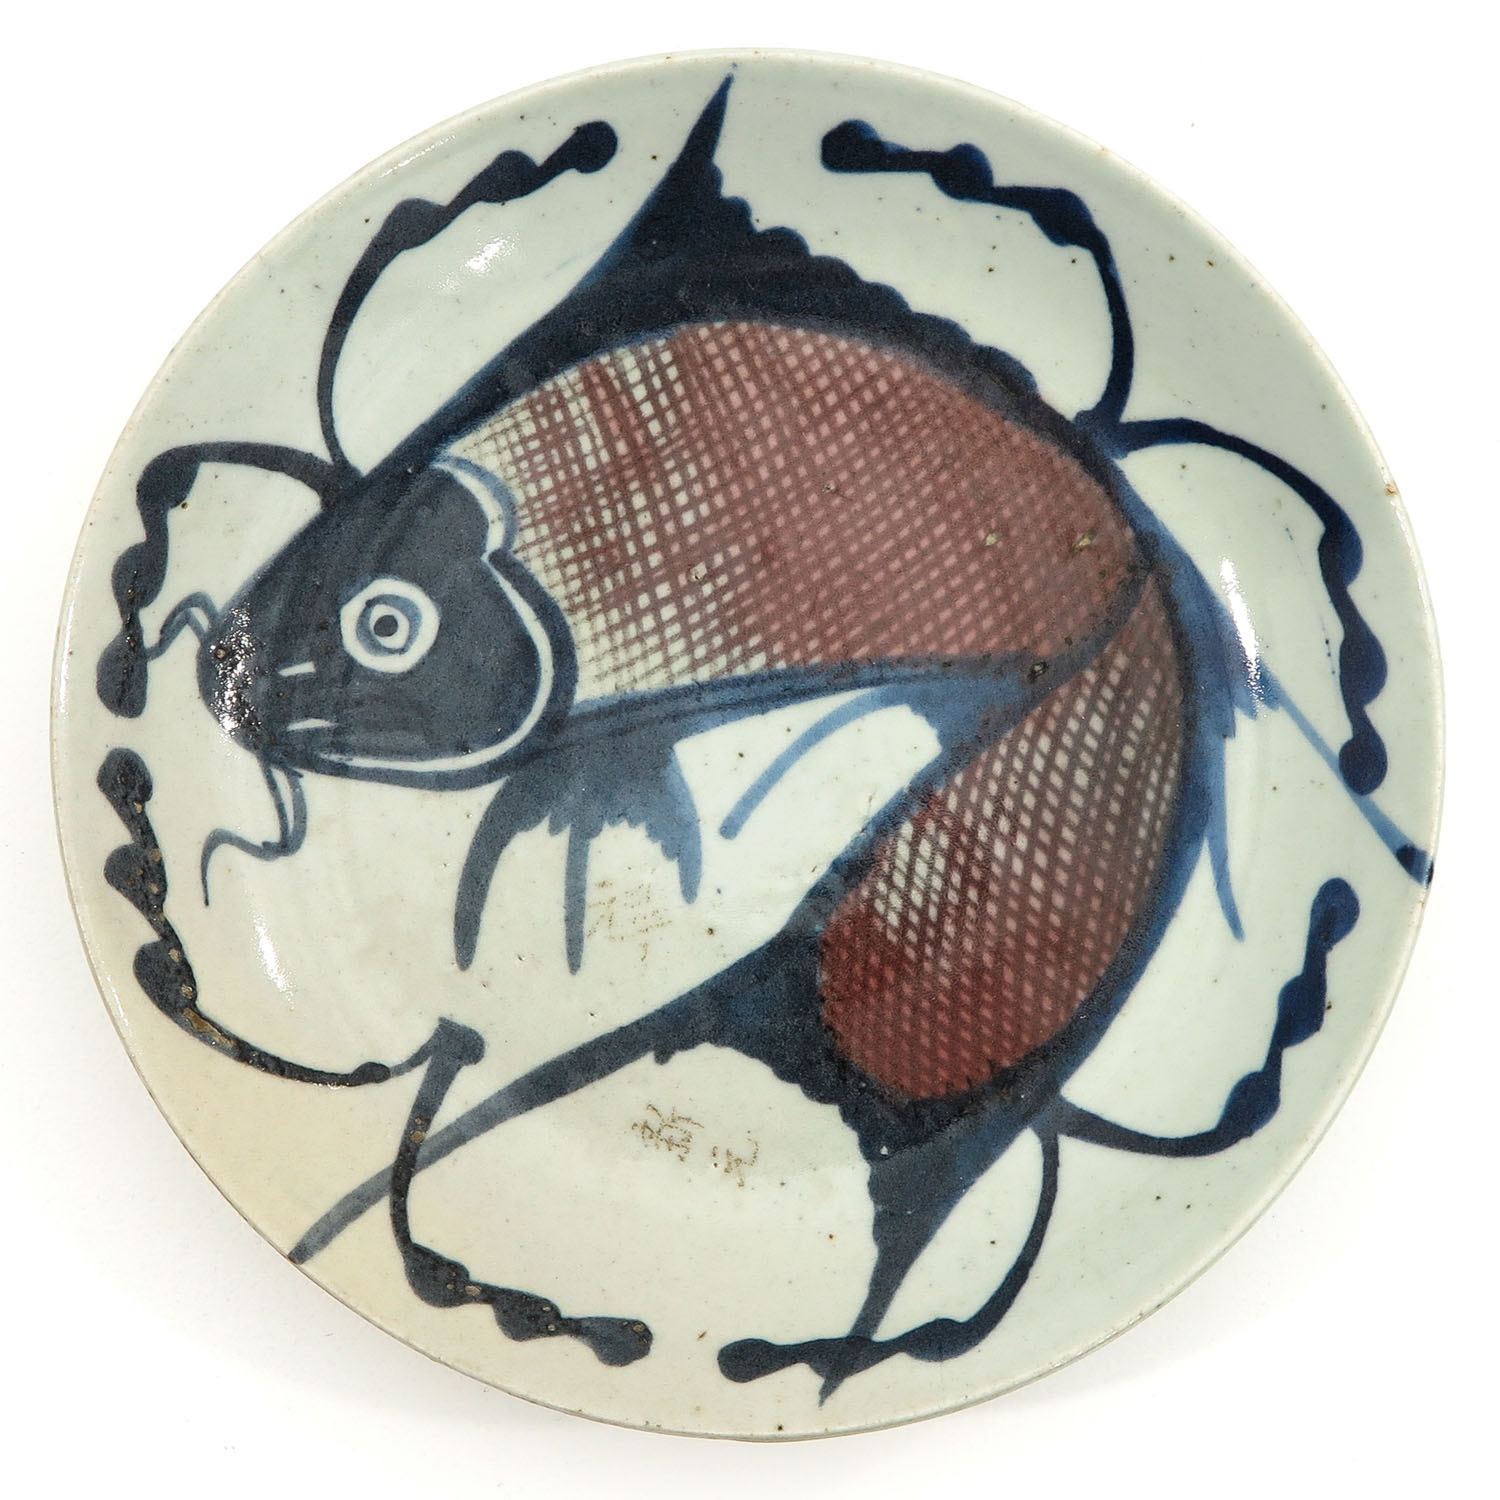 A Collection of 3 Stoneware Plates - Image 3 of 10